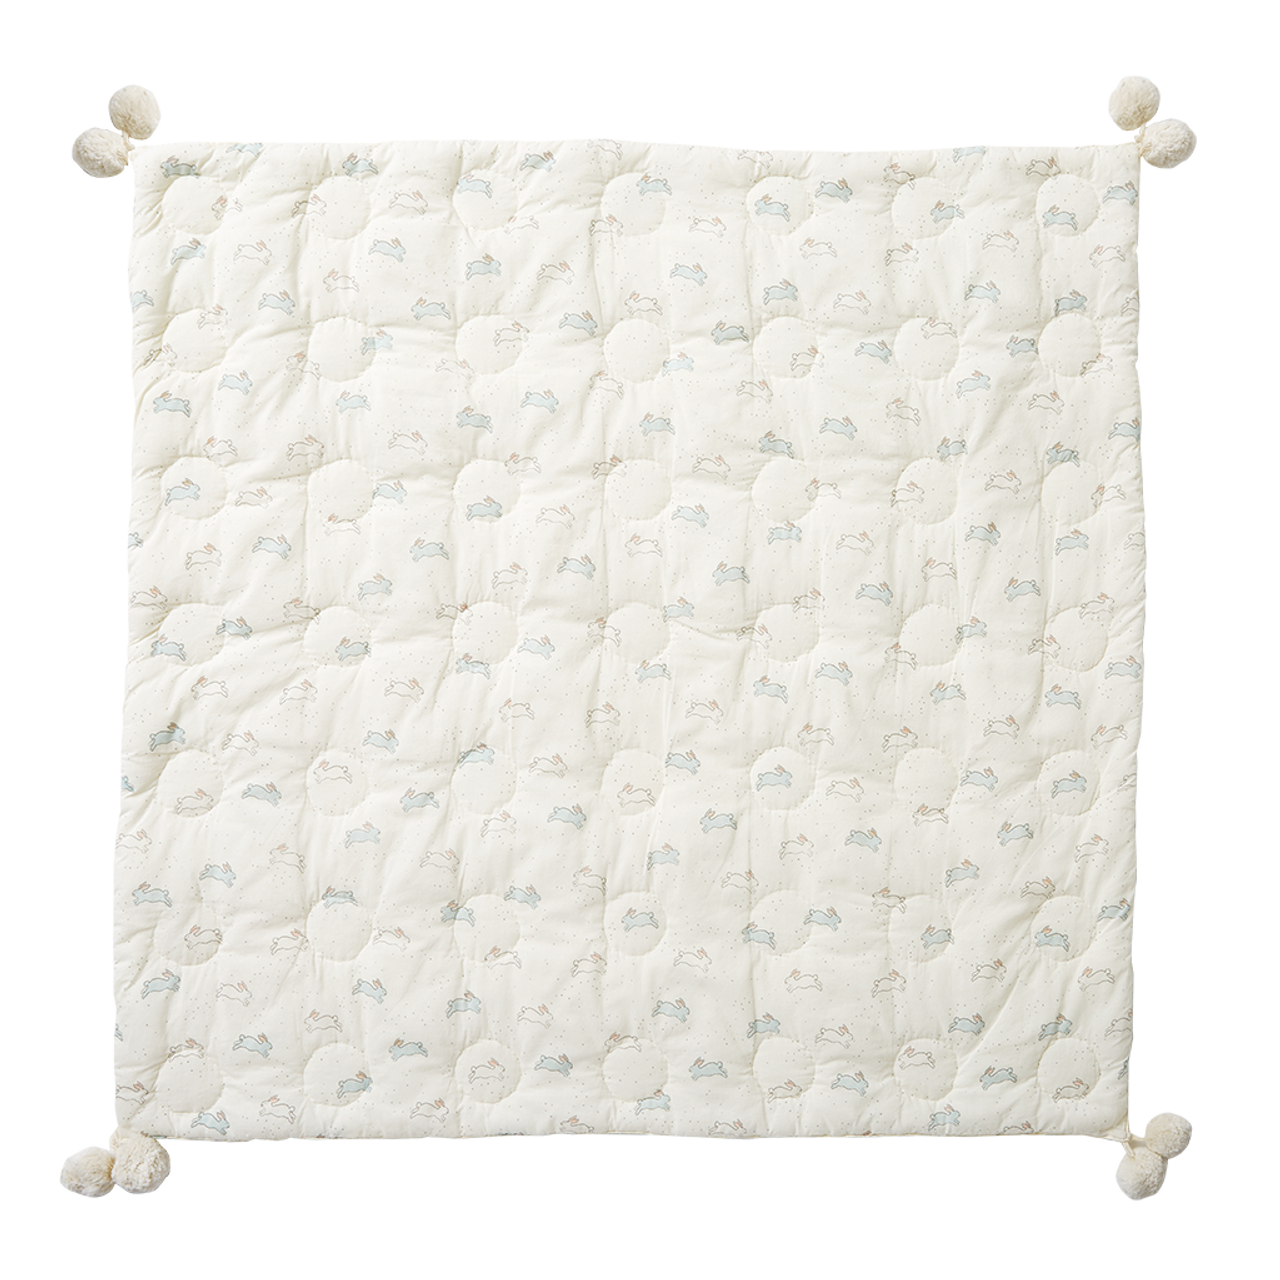 Tiny Bunny Quilted Pom Pom Blanket - Spearmint Ventures, LLC